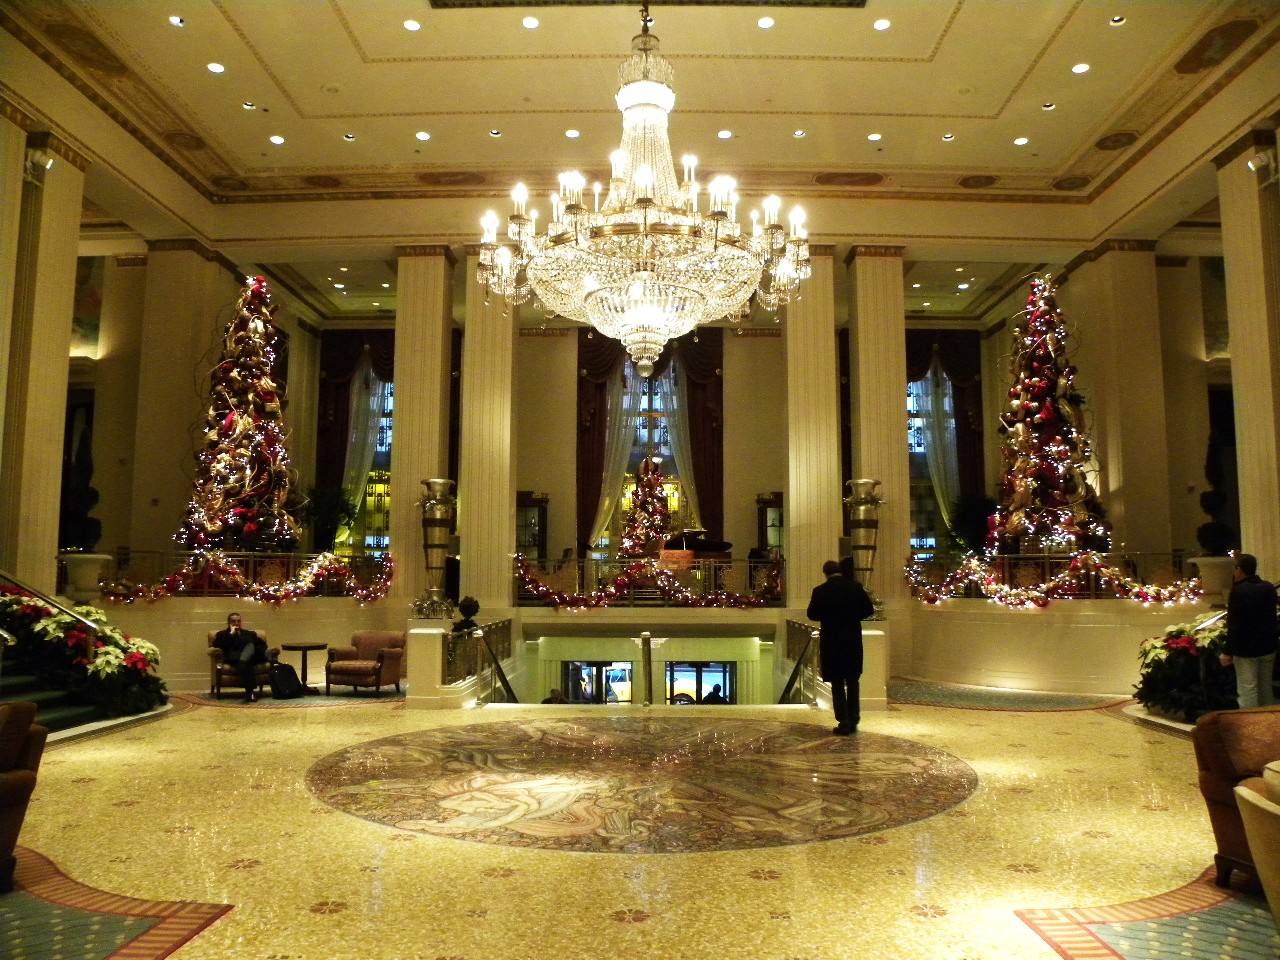 Decoration Hotel Commercial Holiday Decor Sarasota Fl Beneva Plantscapes